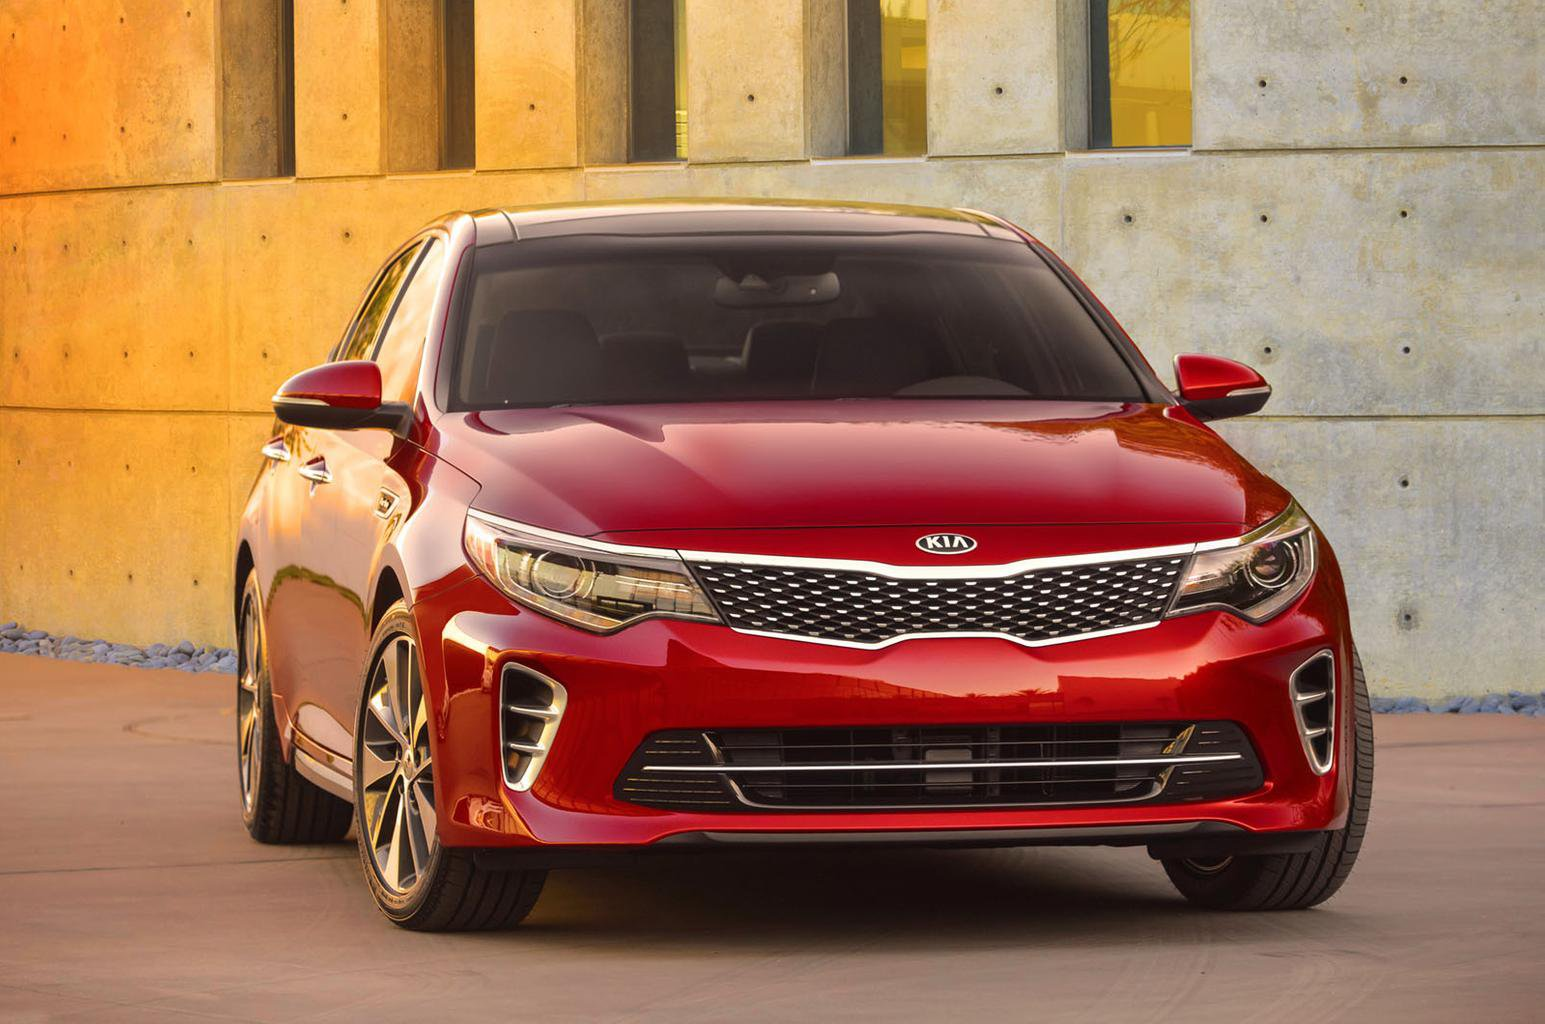 New Kia Optima shown ahead of year-end launch